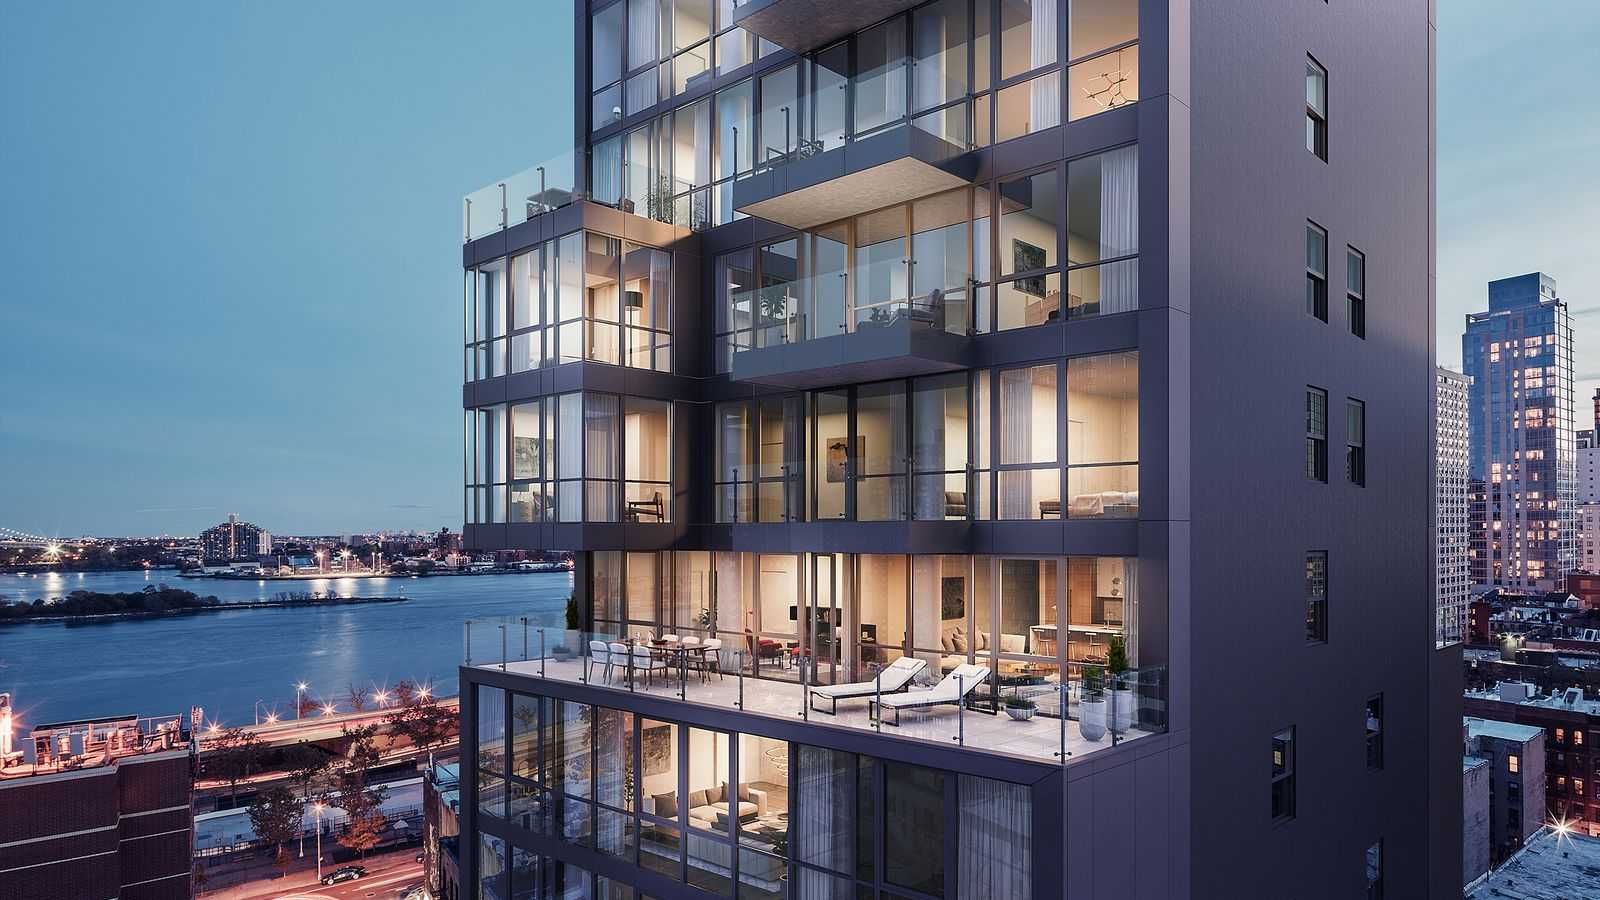 Upper east side condo vitre launches sales from 915k for Condominium for sale in nyc